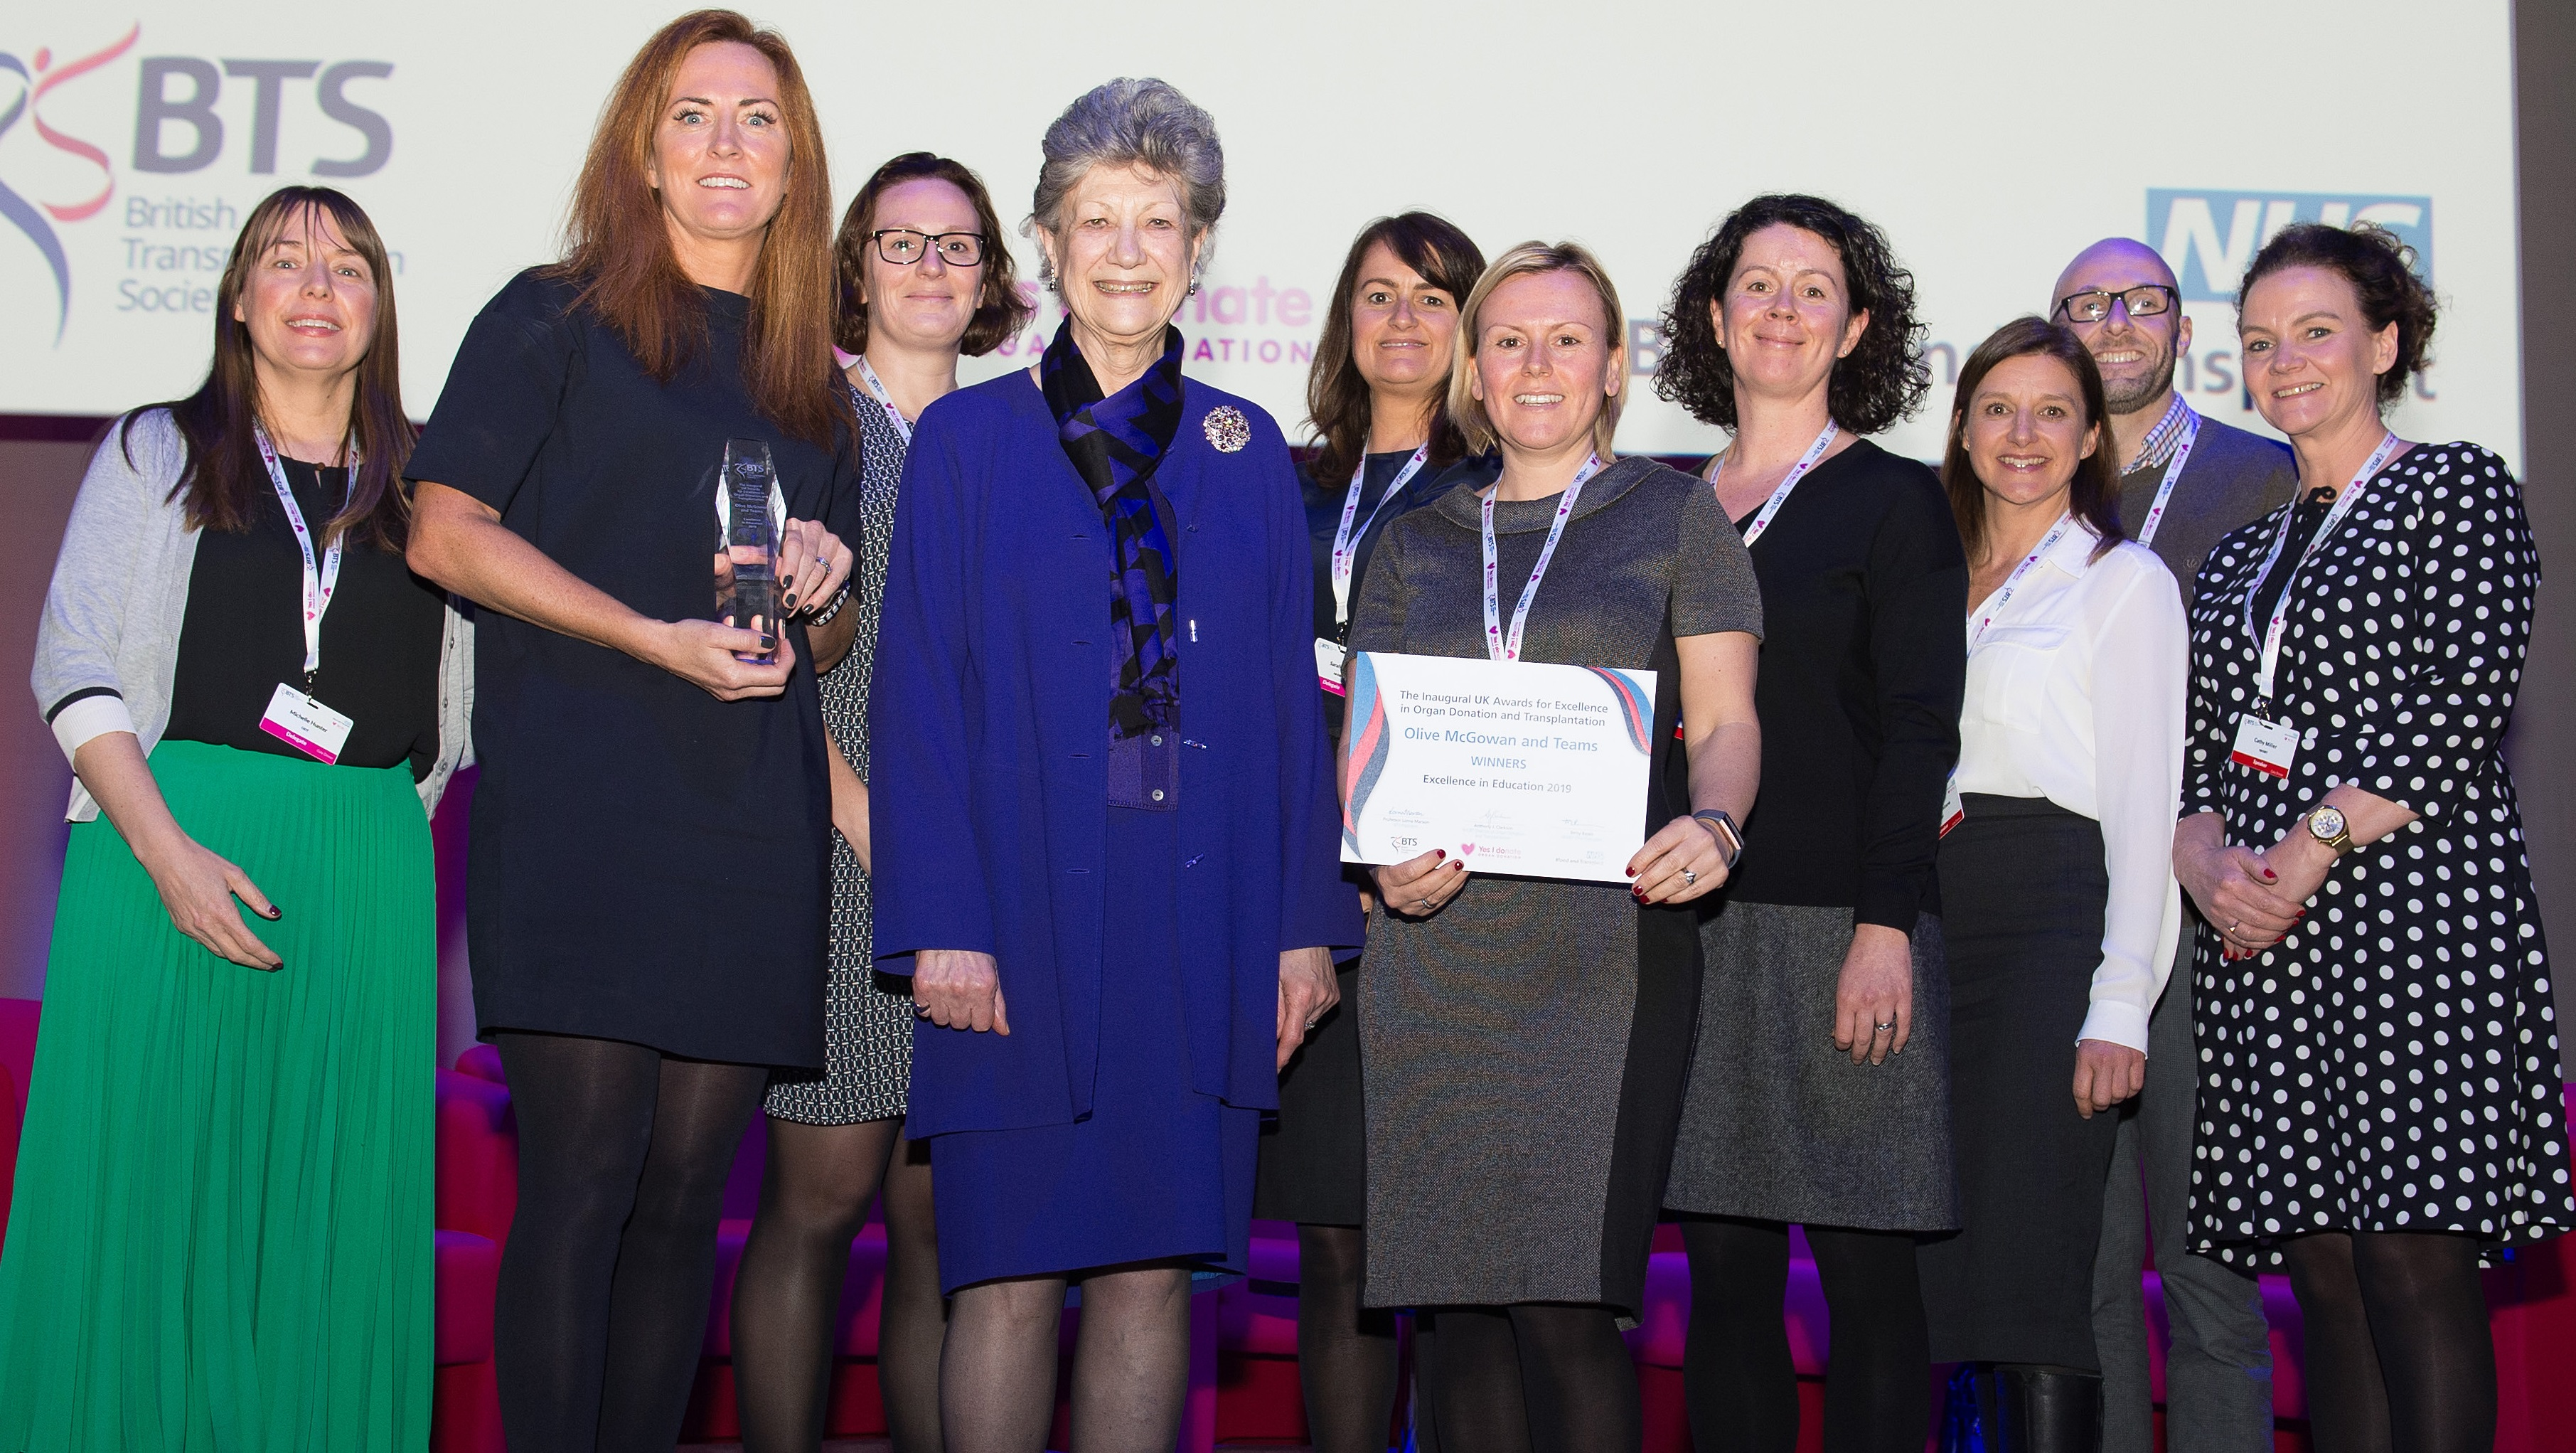 Olive McGowan and her team at NHS Blood and Transplant, who received the Excellence in Education award at the 2019 awards